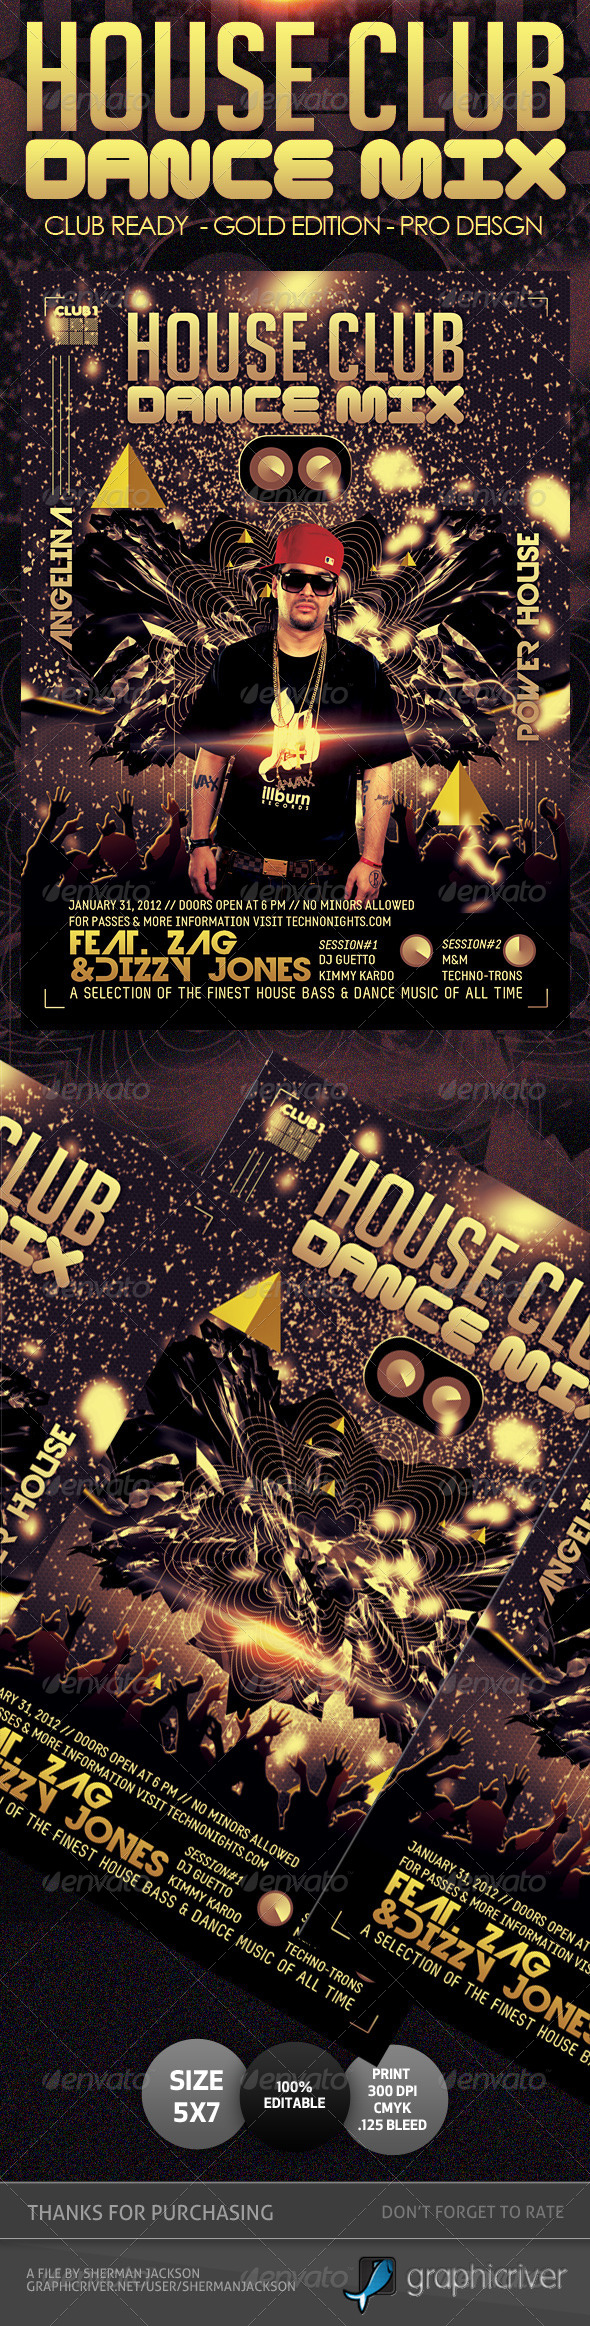 House Club Trance & Dance Mix Flyer - Gold Edition - Clubs & Parties Events